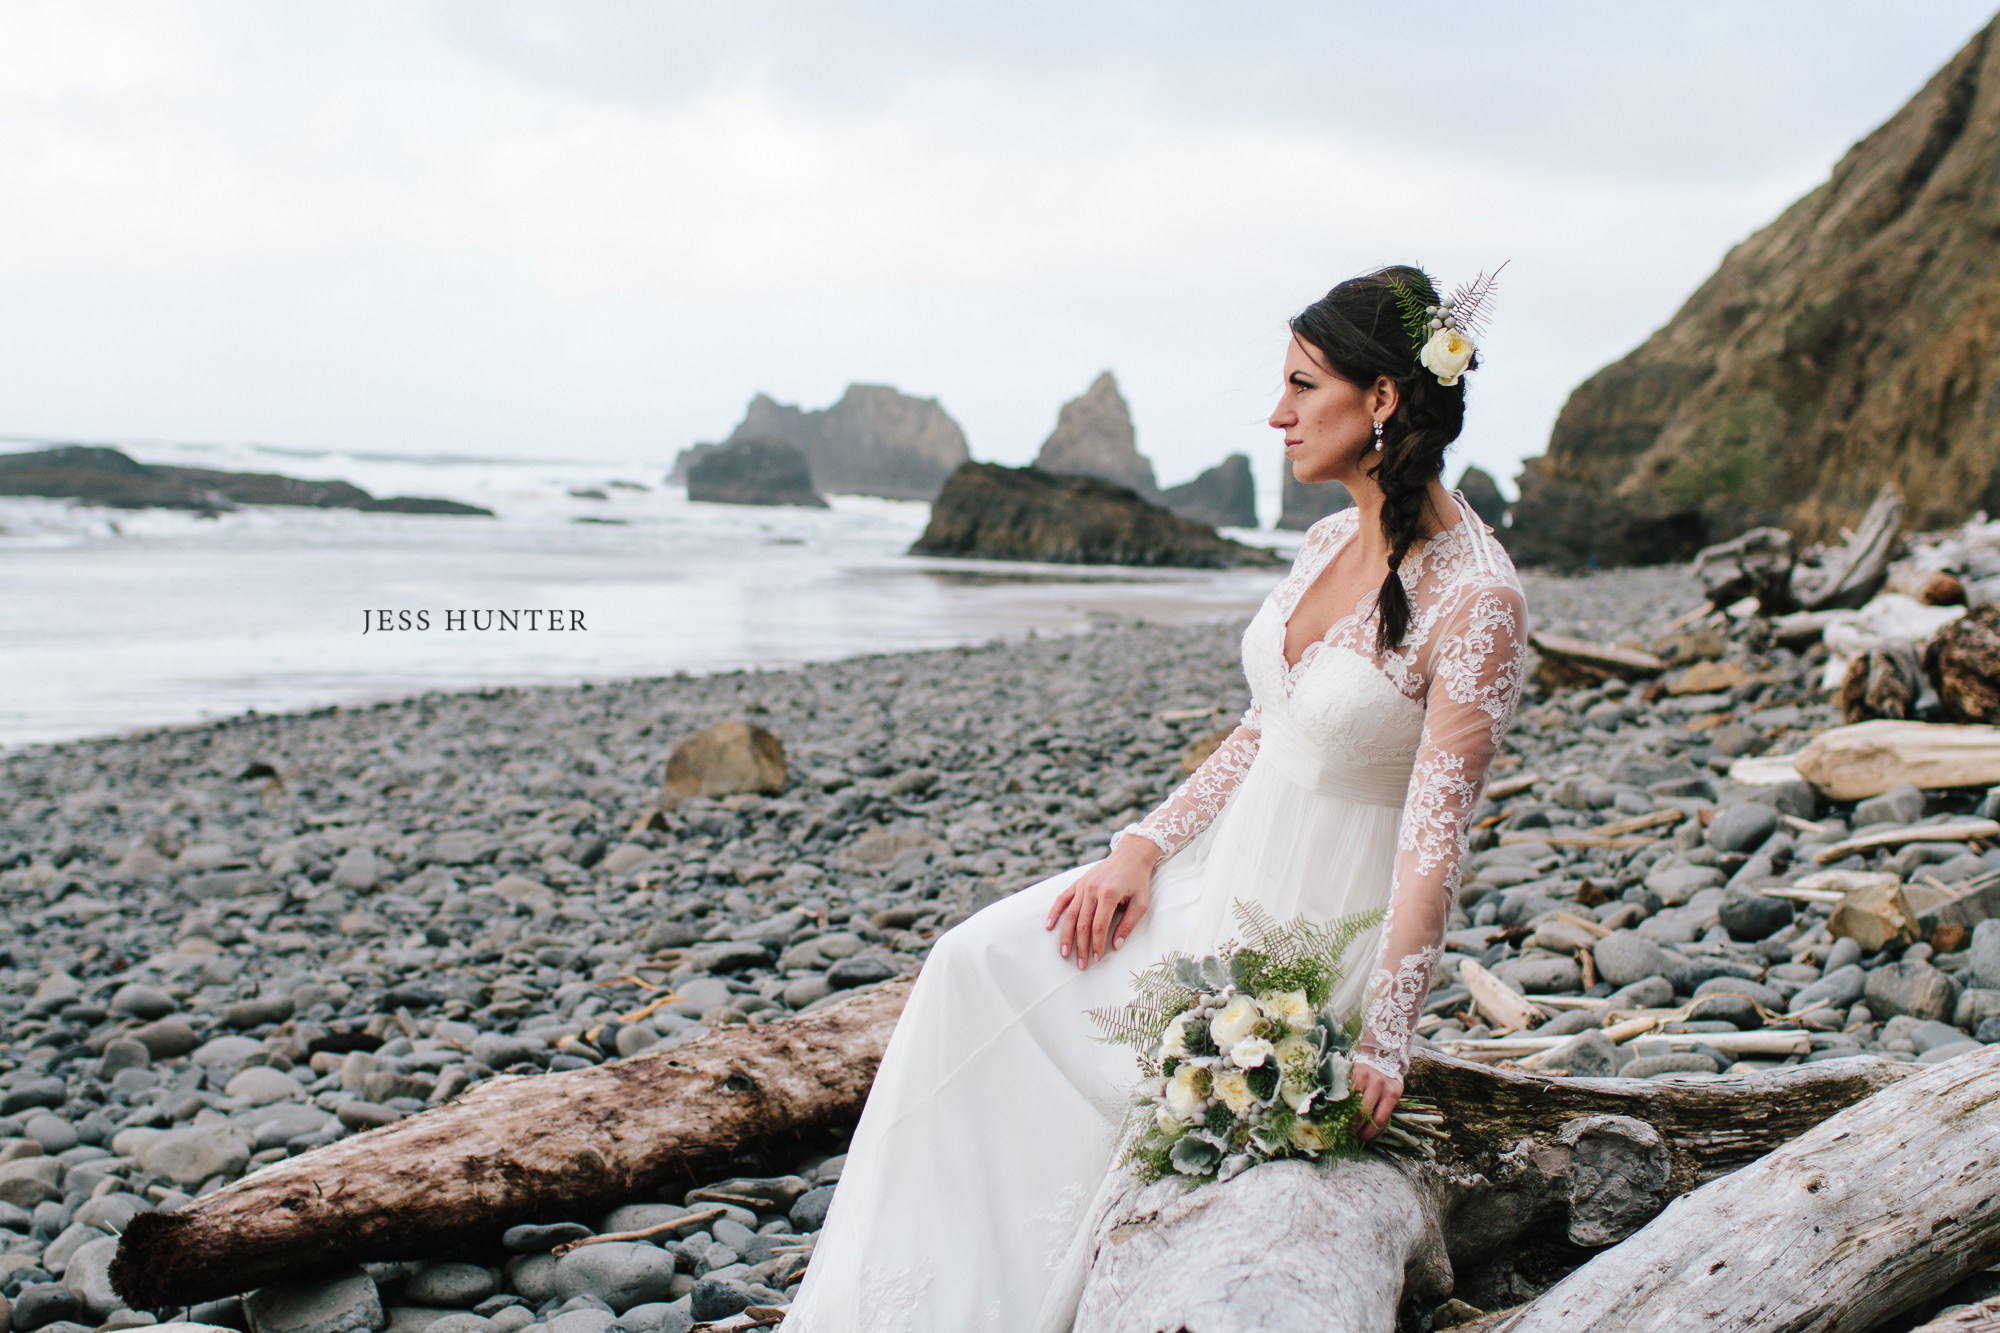 Jess Hunter Photography, Seattle wedding photographer, Oregon coast wedding, wedding on the beach, Portland wedding photographer